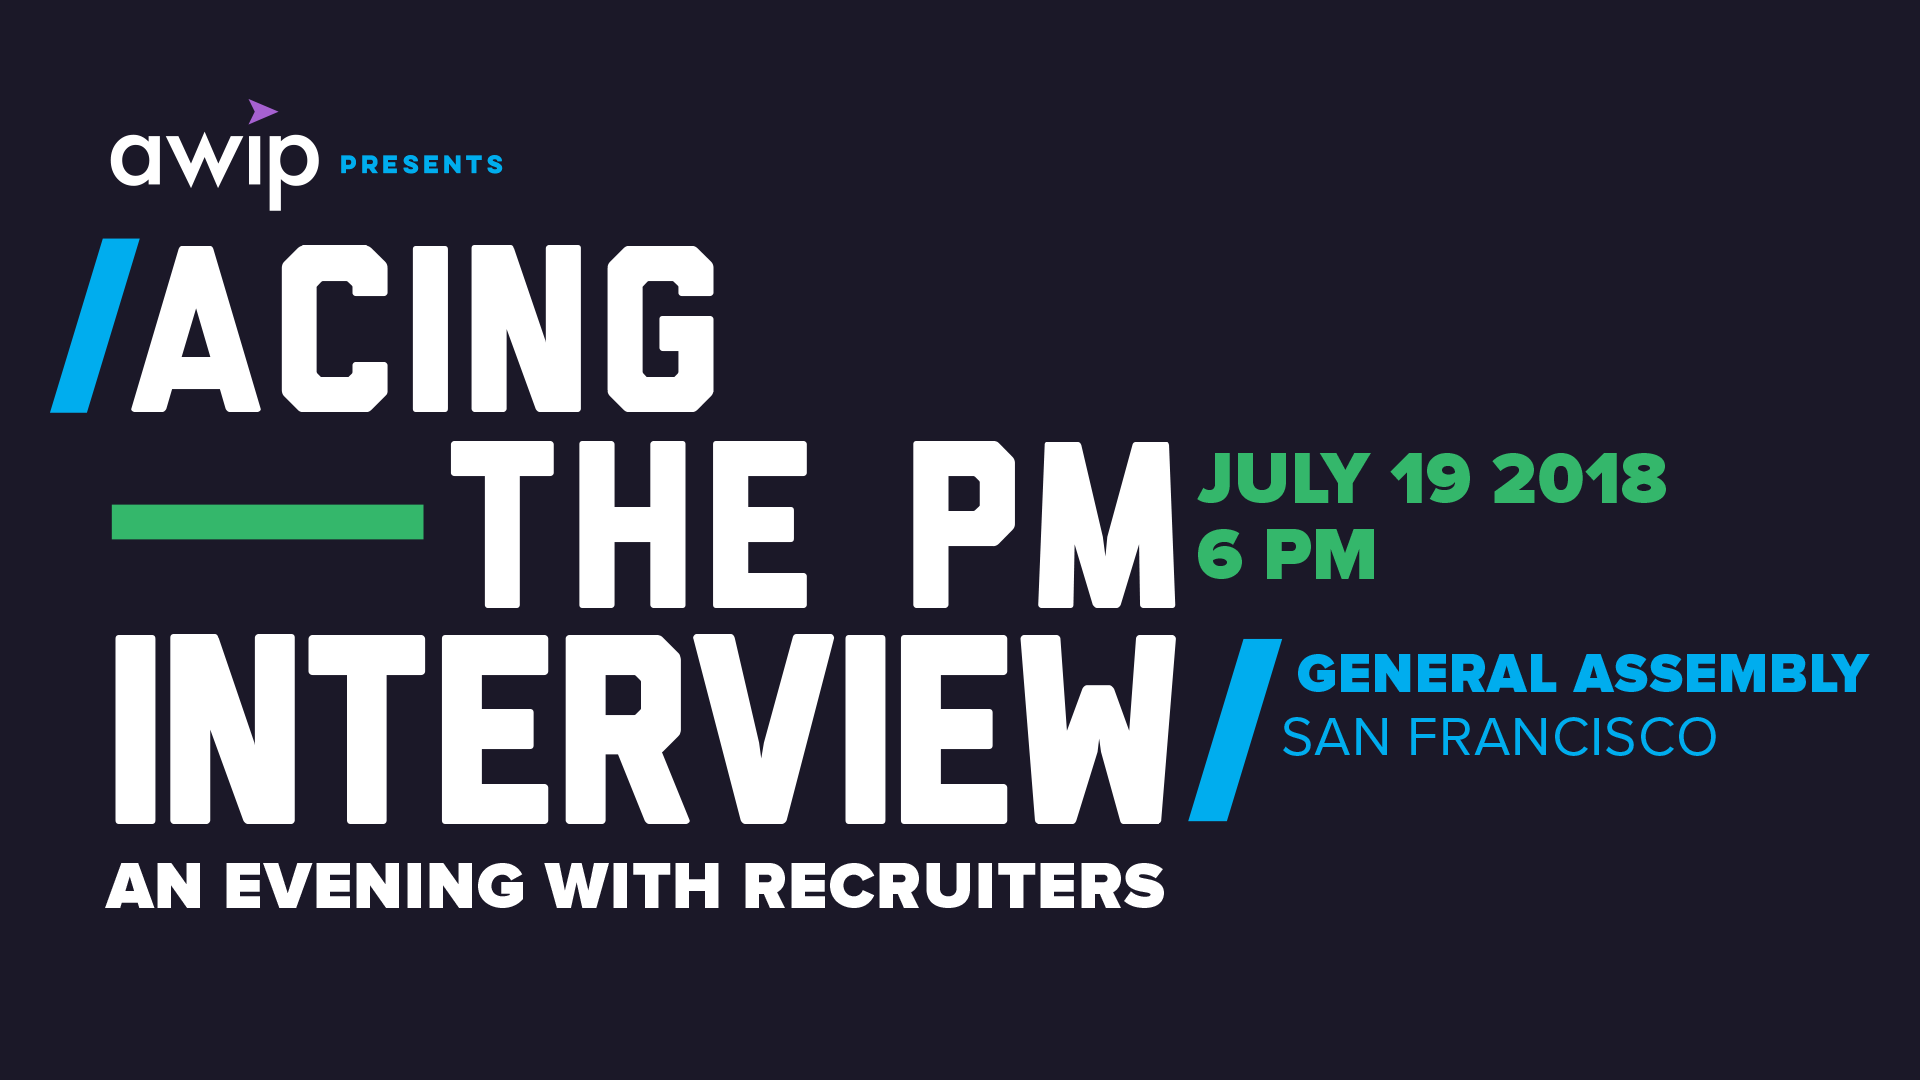 AWIP Presents: Acing the PM Interview